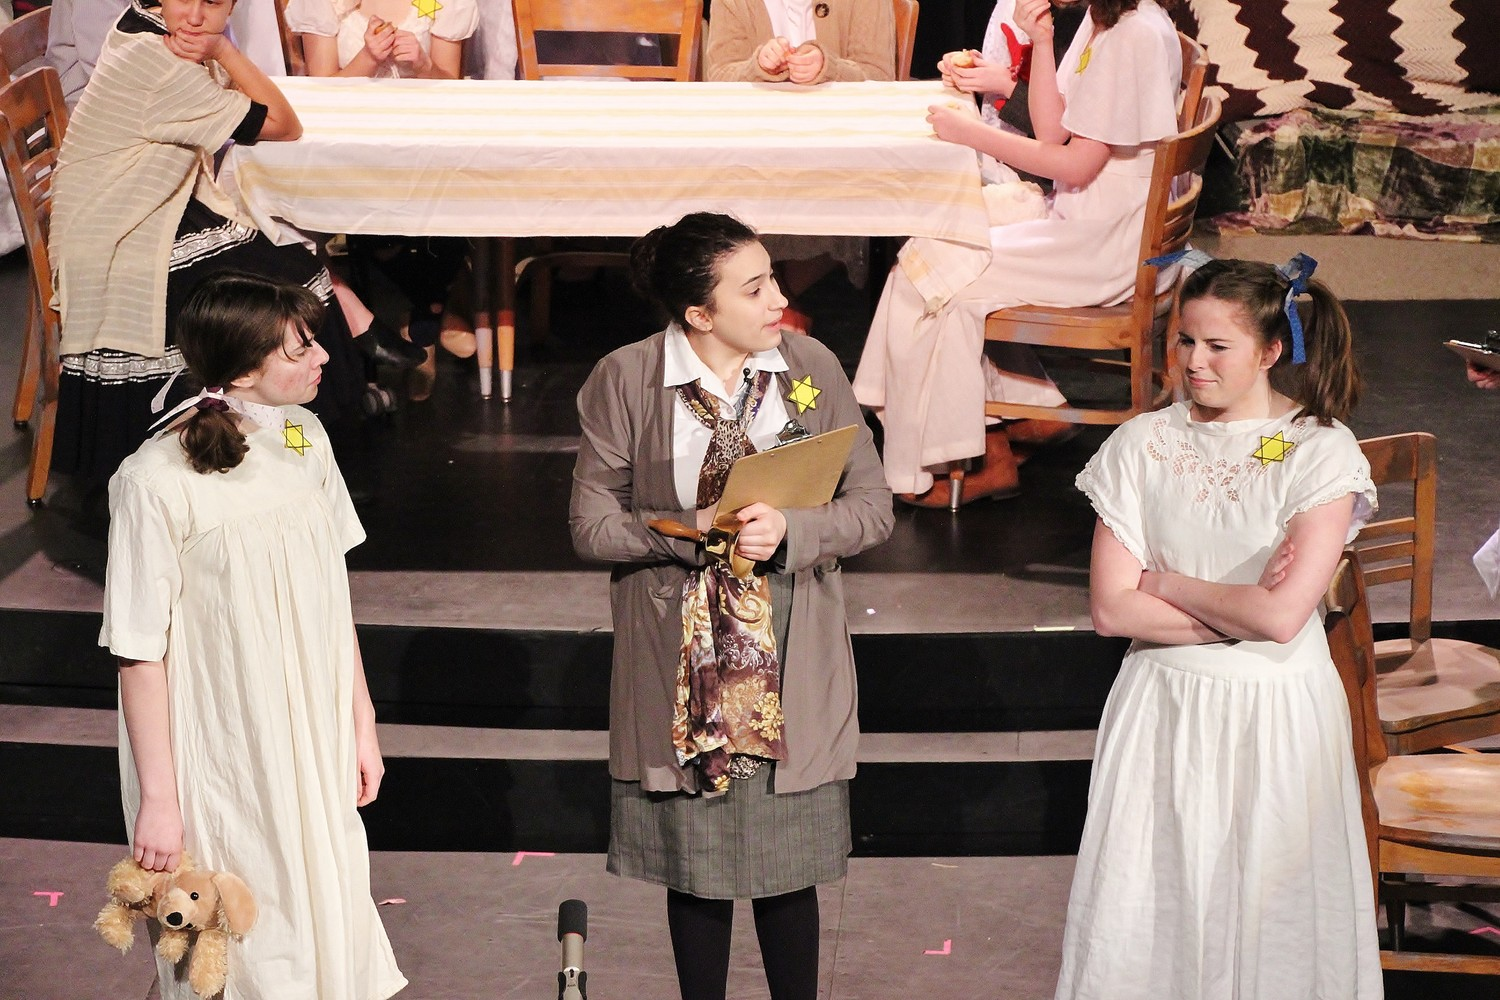 Abby Dawson of Riverside  as Little Hannah, Julia Smith as Madam Steffa, and Emma North as Big Hannah.